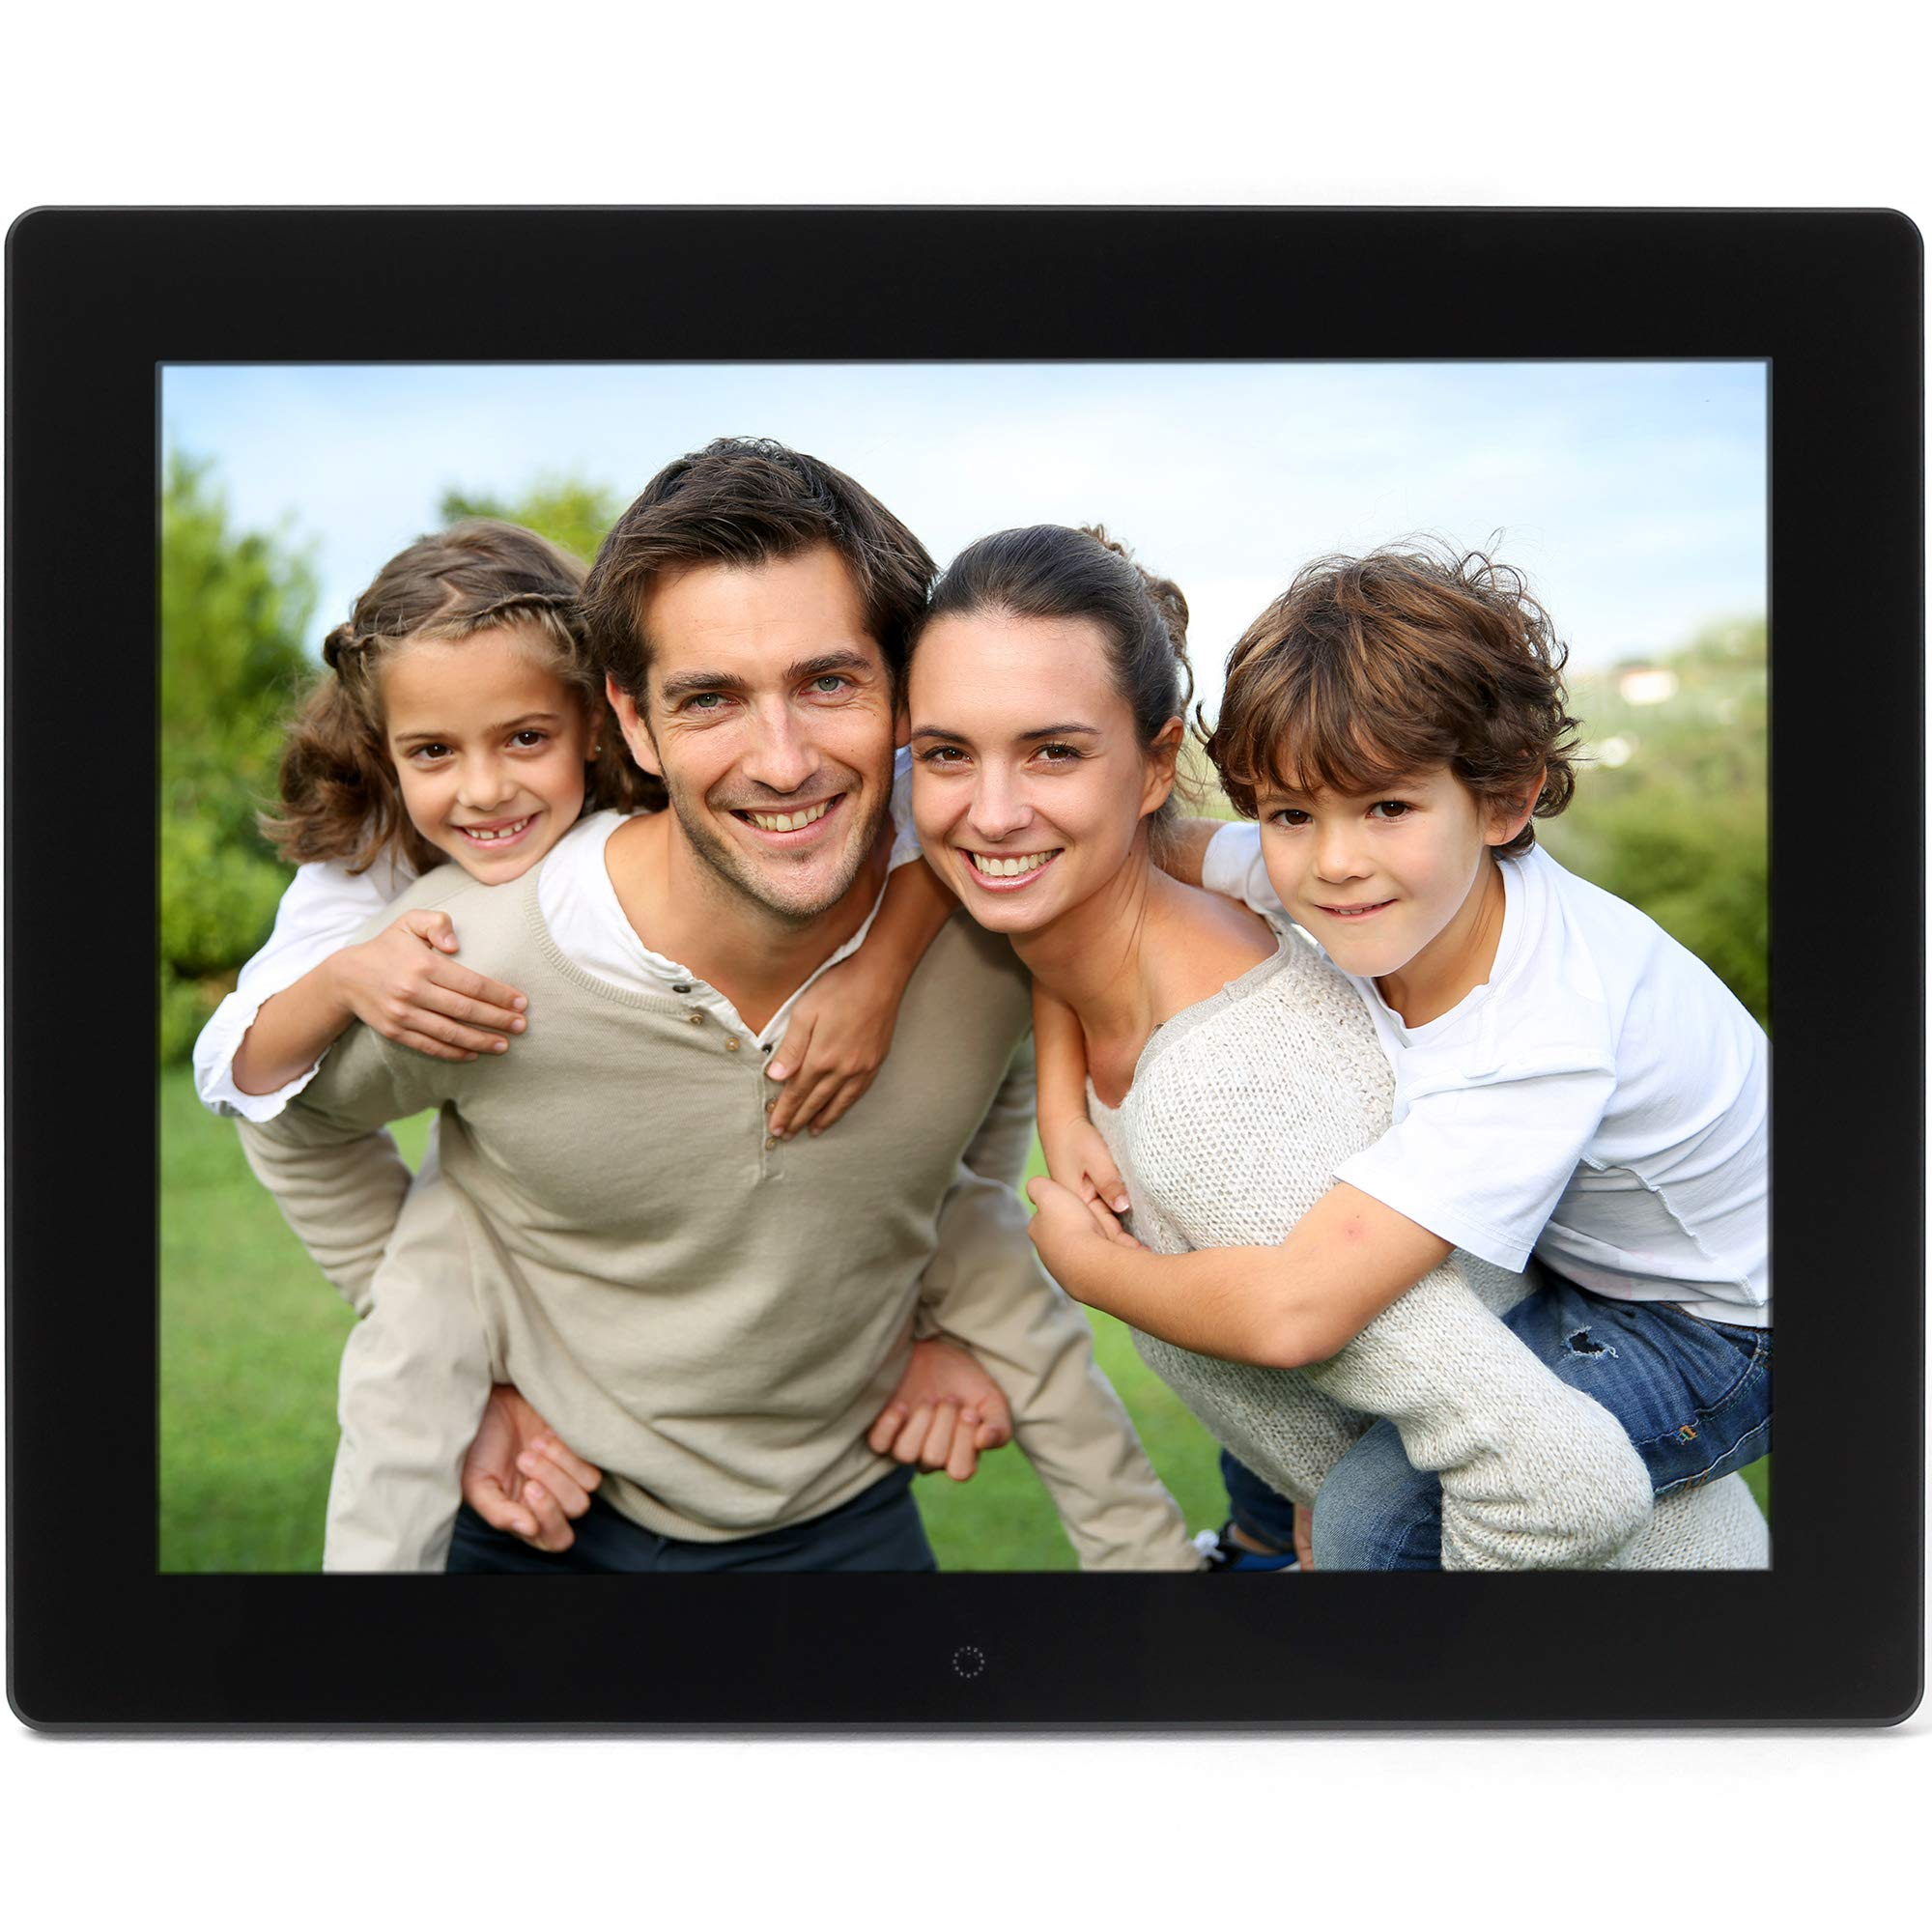 Micca NEO 15-Inch Digital Photo Frame with 8GB Storage, High Resolution LCD,